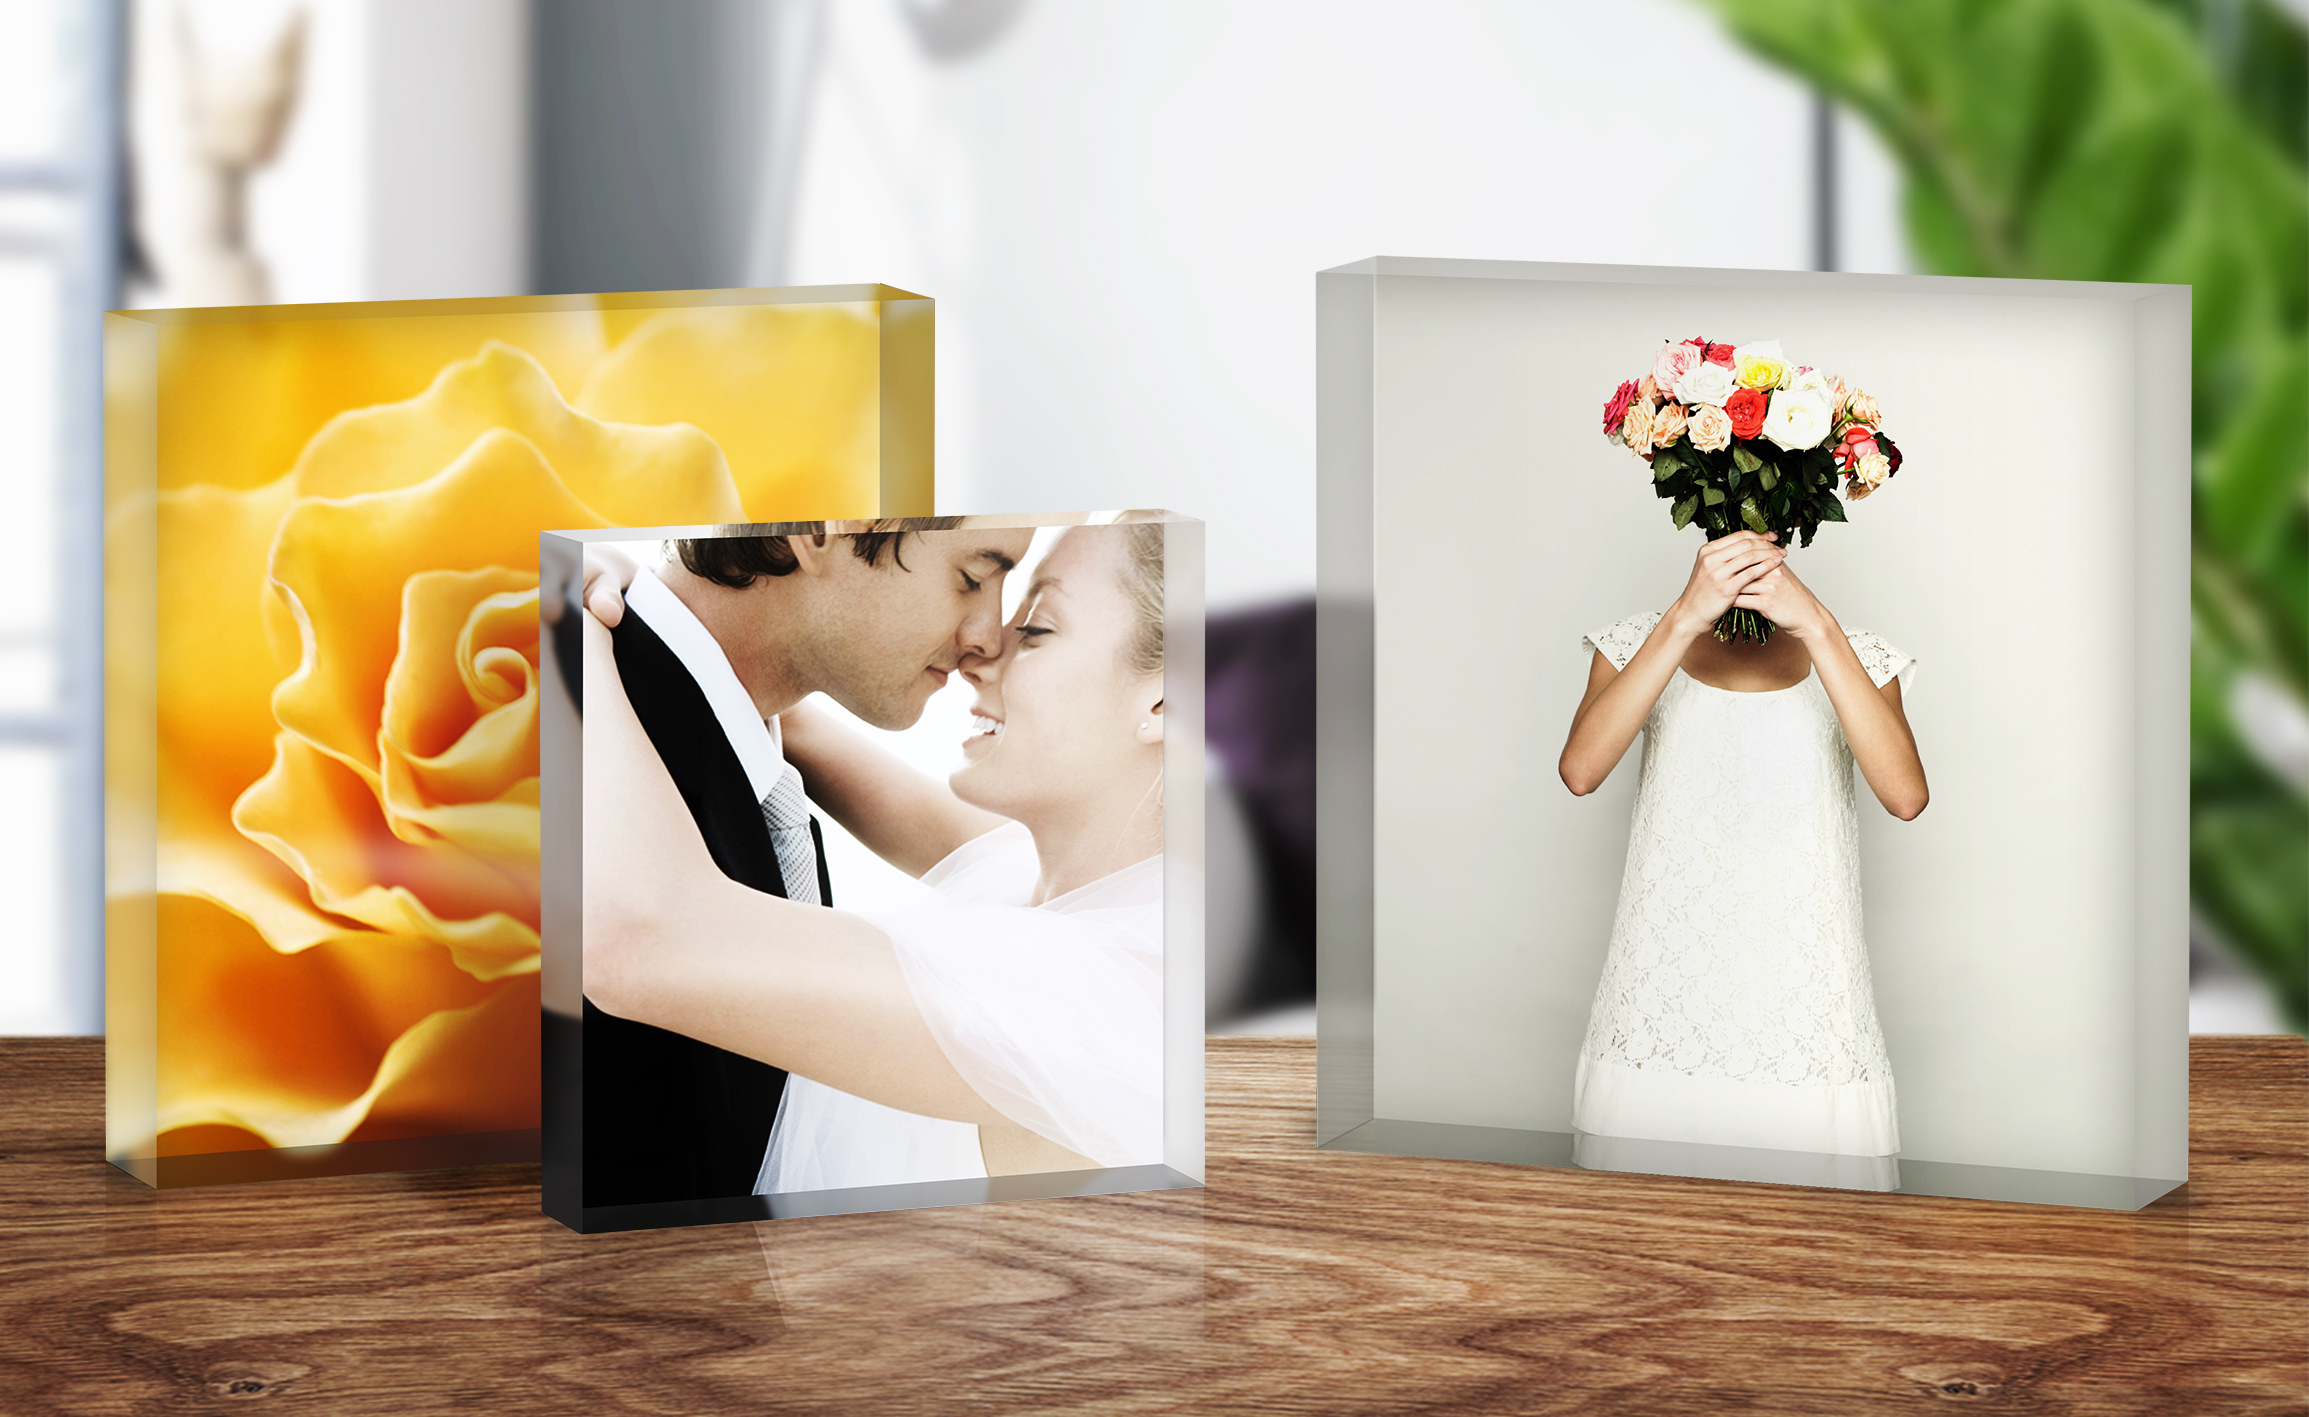 Acrylic Block_Wedding © WhiteWall.co.uk